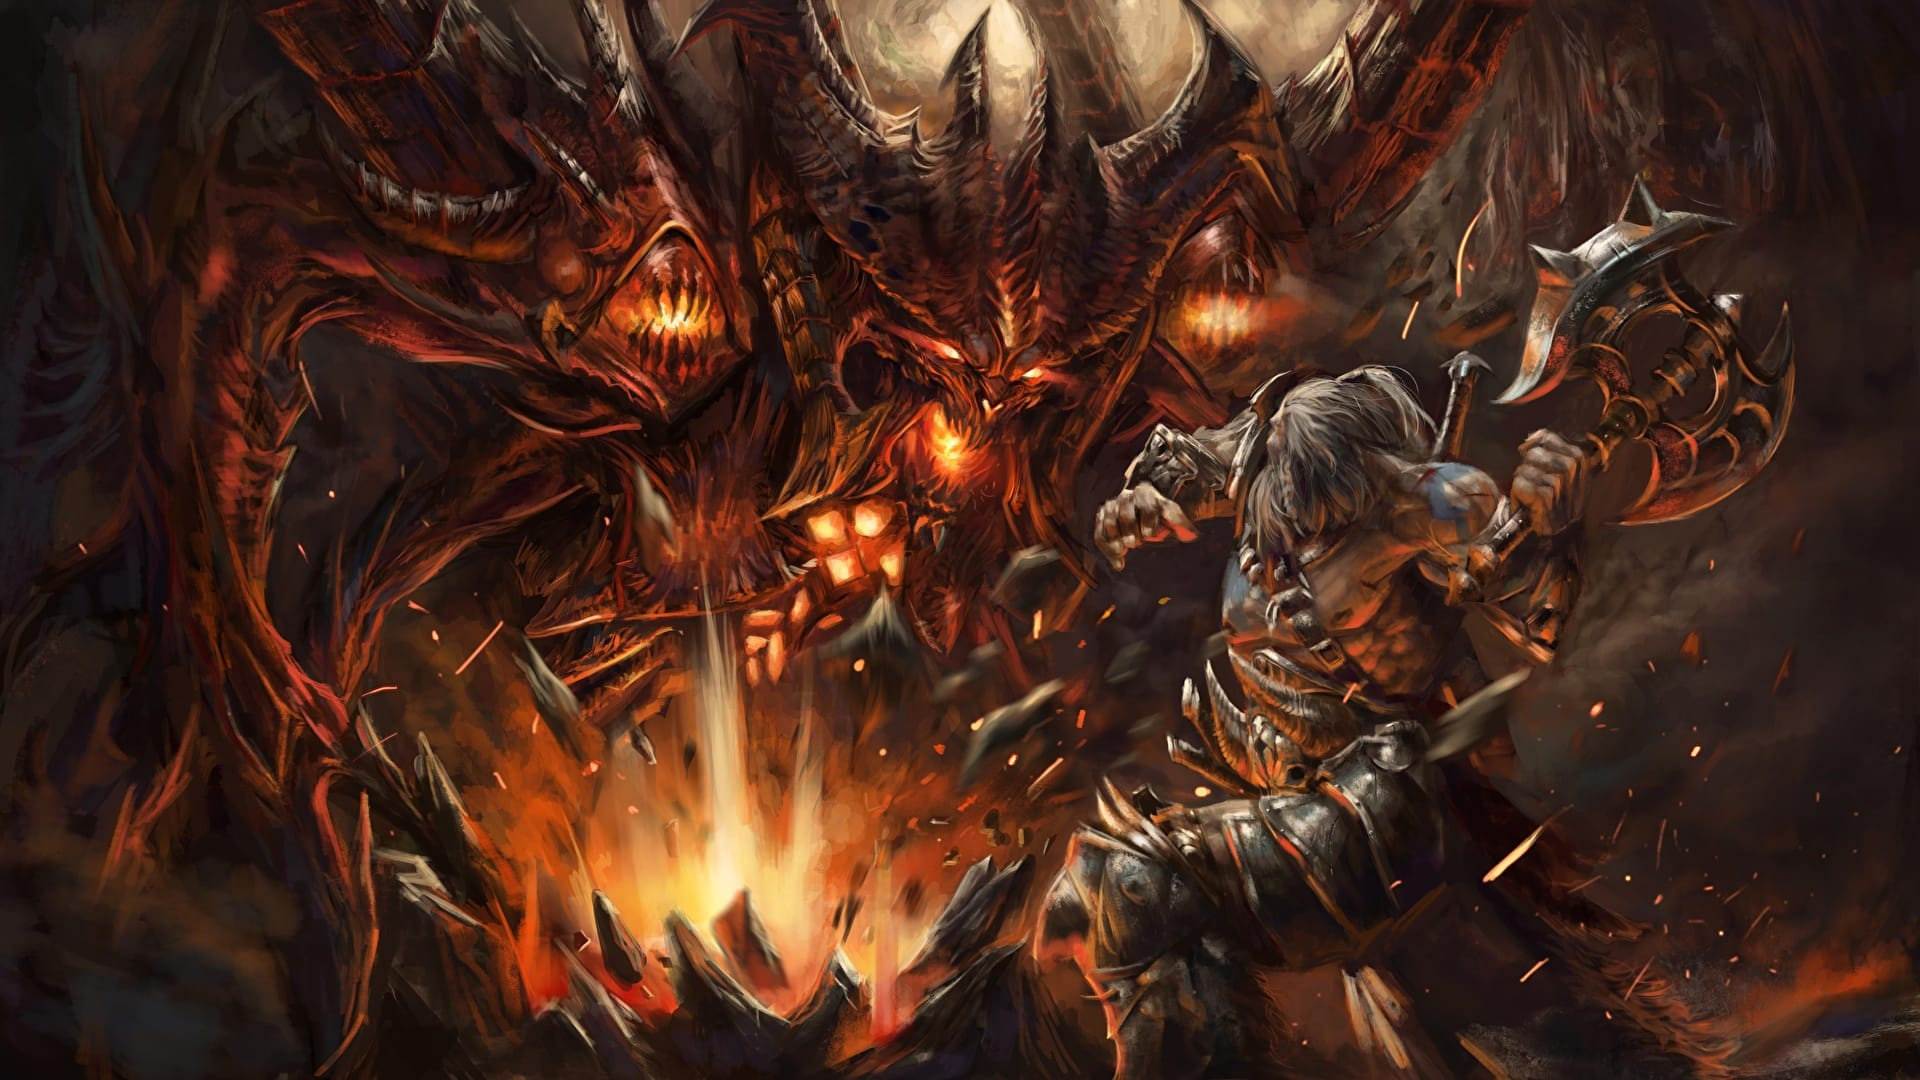 Diablo III: video game difficulty stress not one only way to play, gamer's block